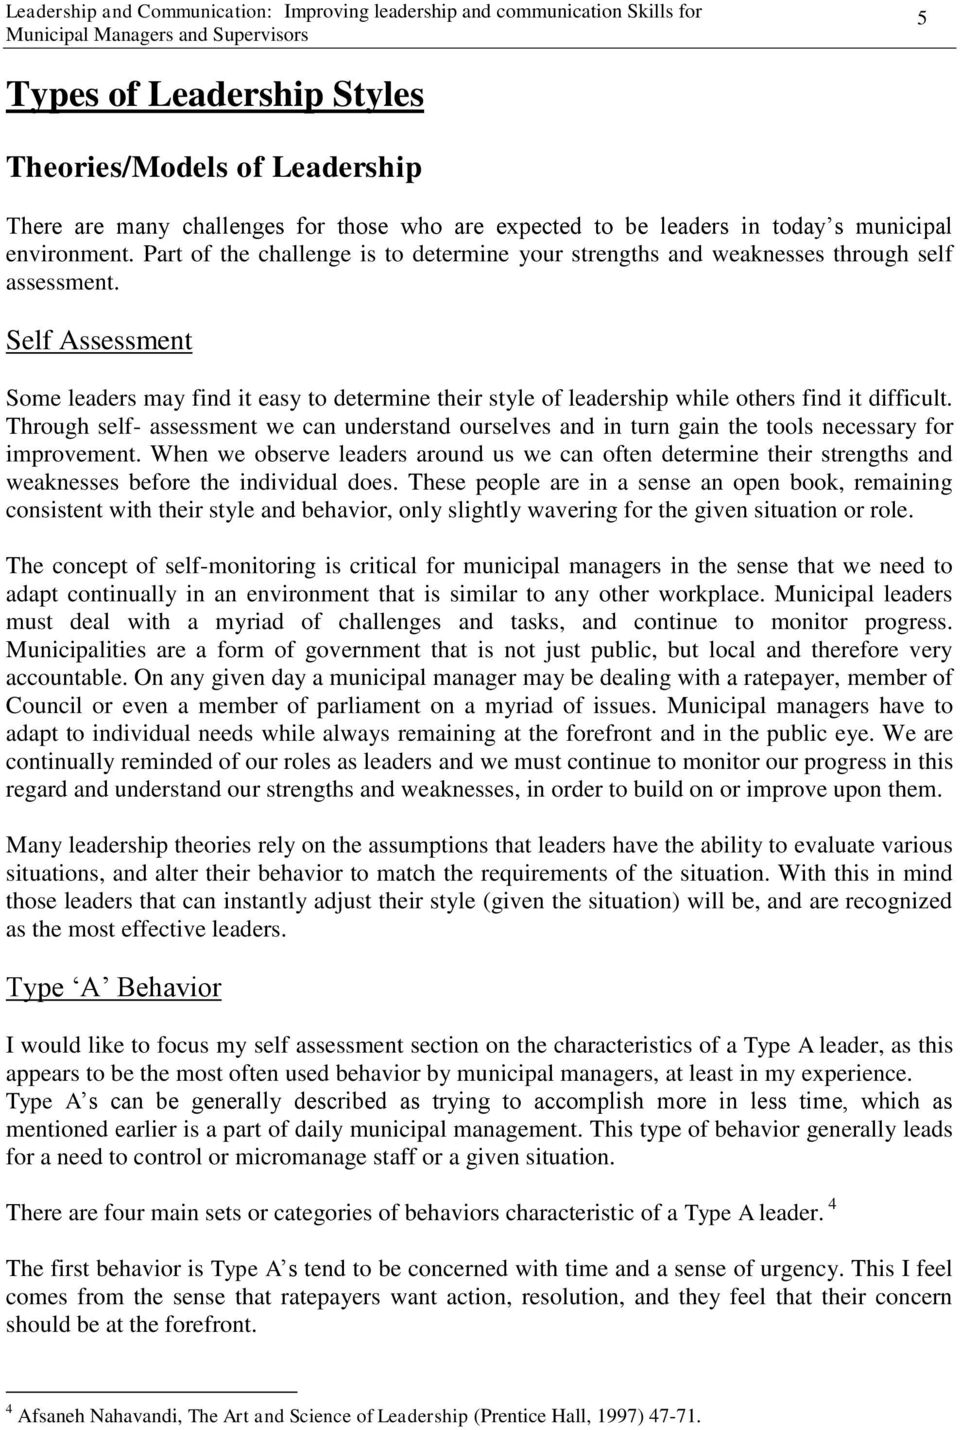 self evaluation examples of strengths and weaknesses